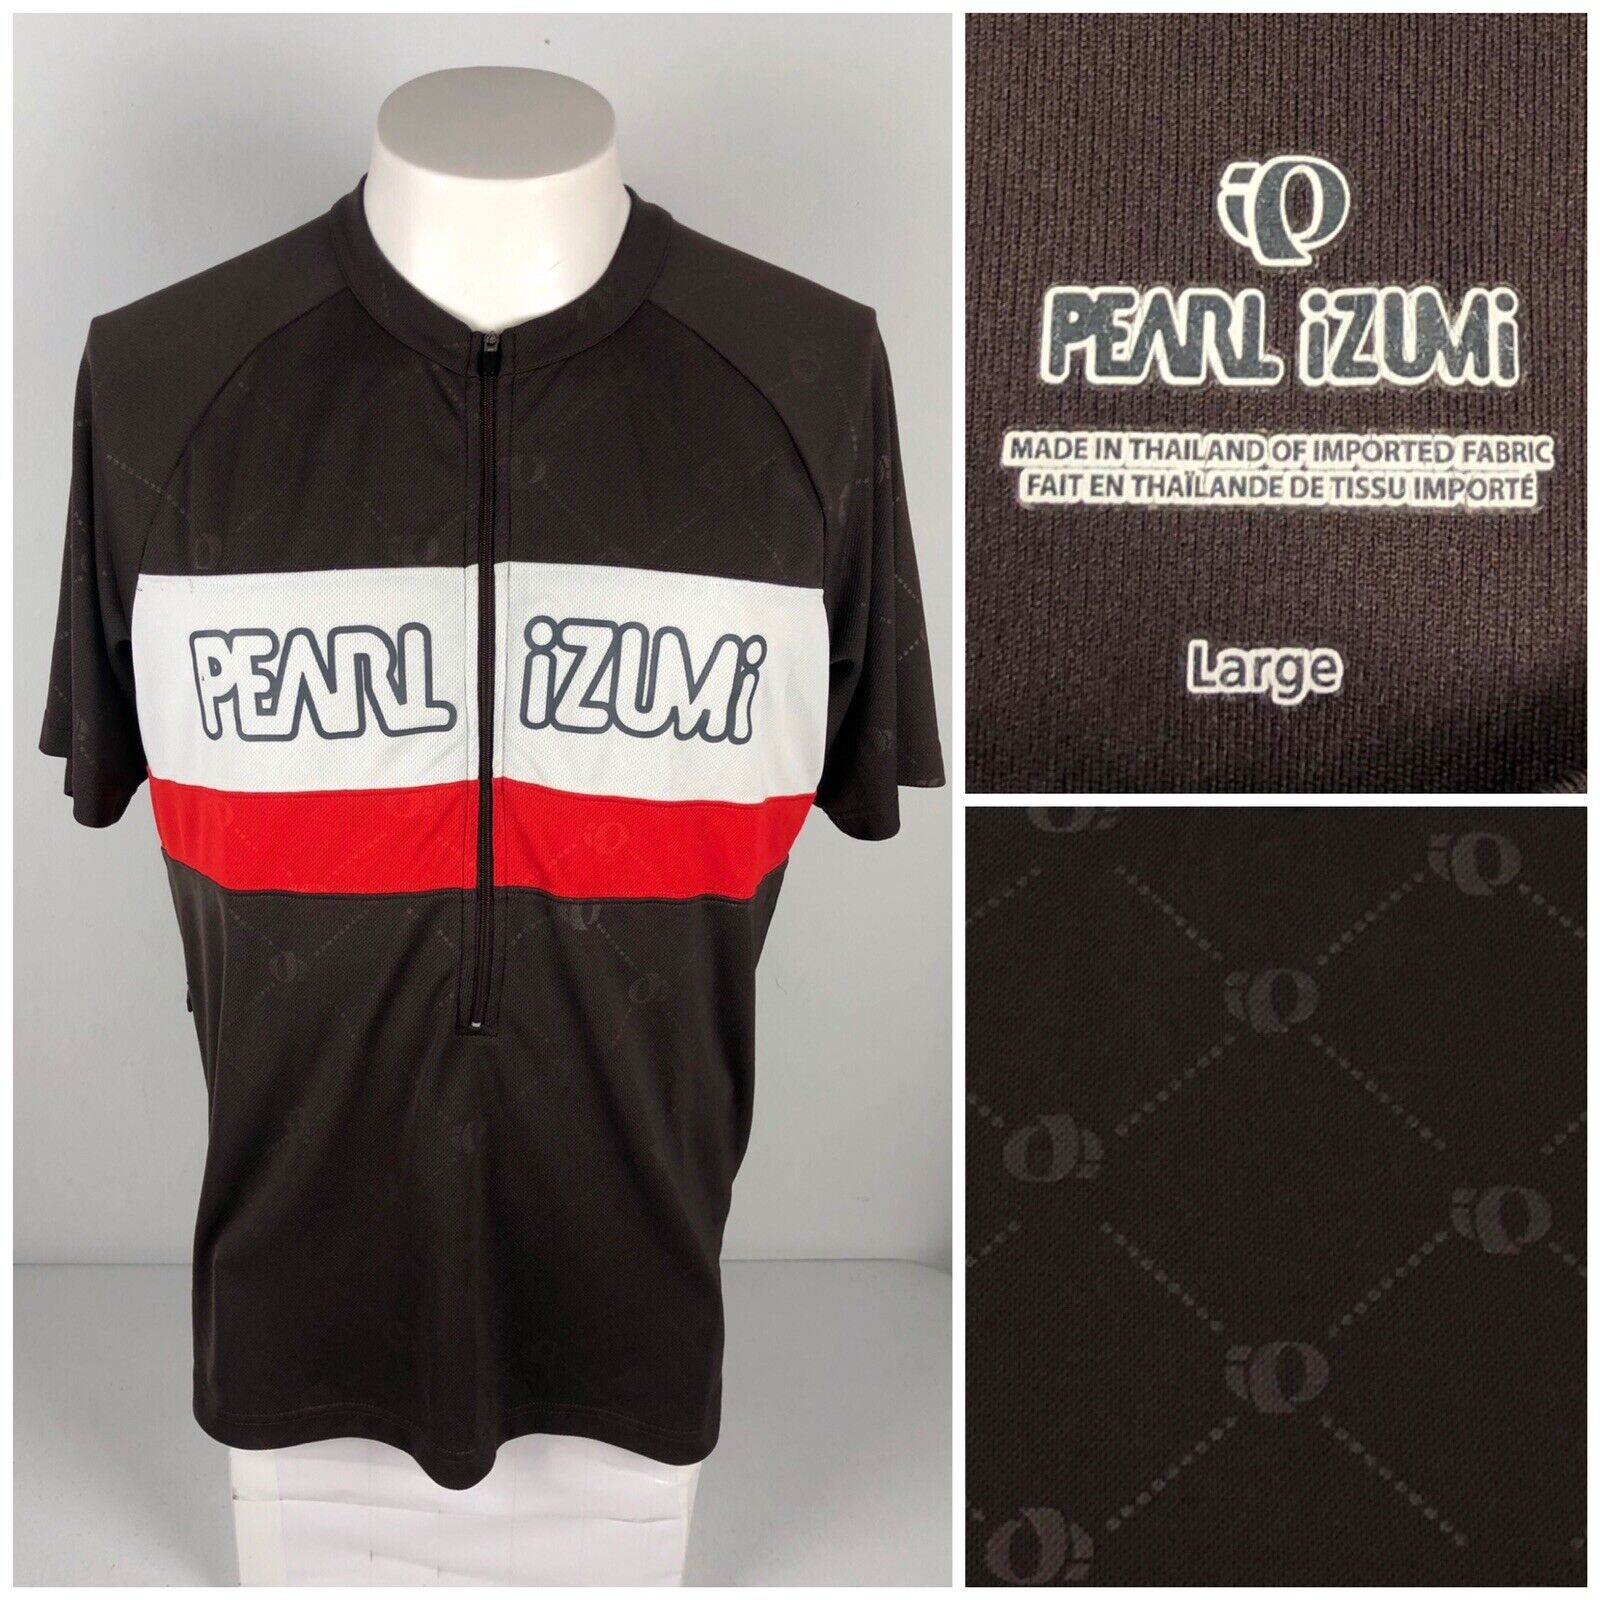 Pearl Izumi Mens Large Cycling  Jersey Multicolor Short Sleeve Monogram Spell Out  up to 50% off